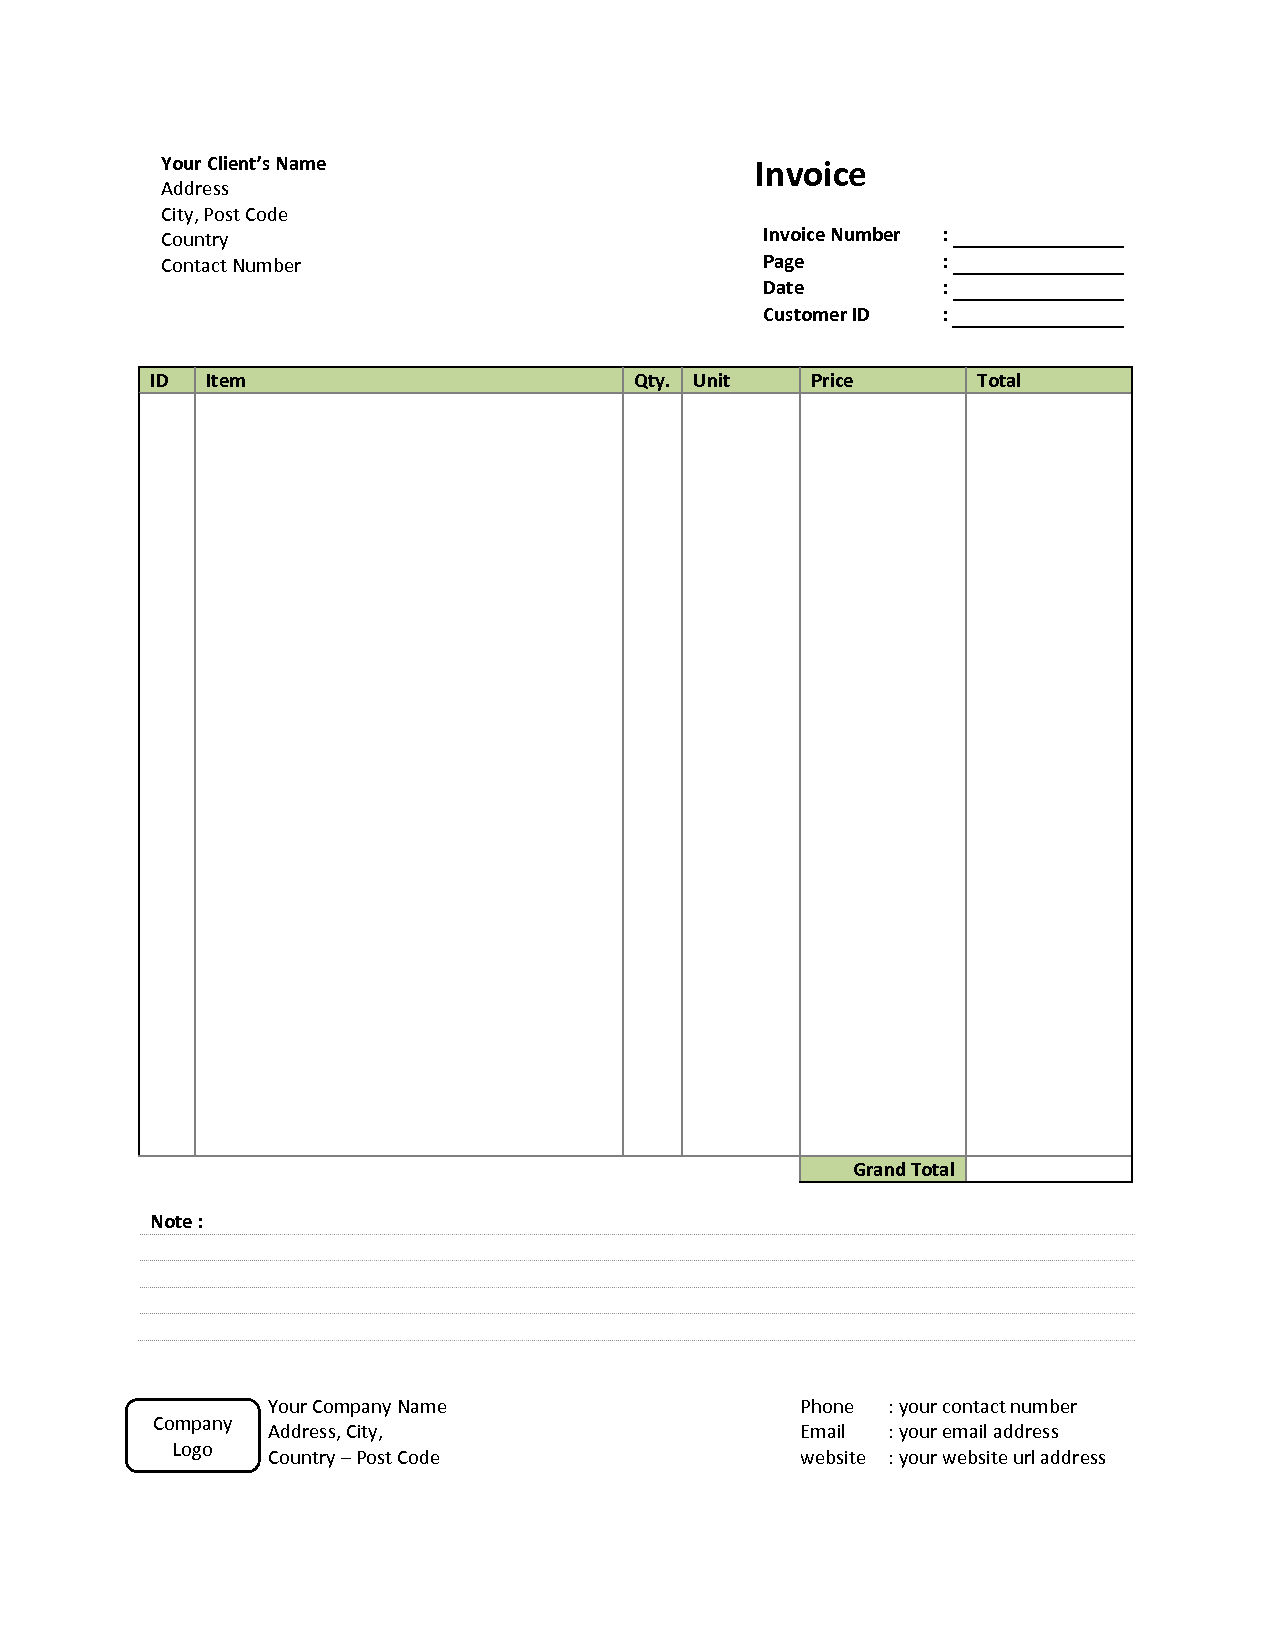 Sample Invoices for Small Business and Simple Invoice Template Free to Do List